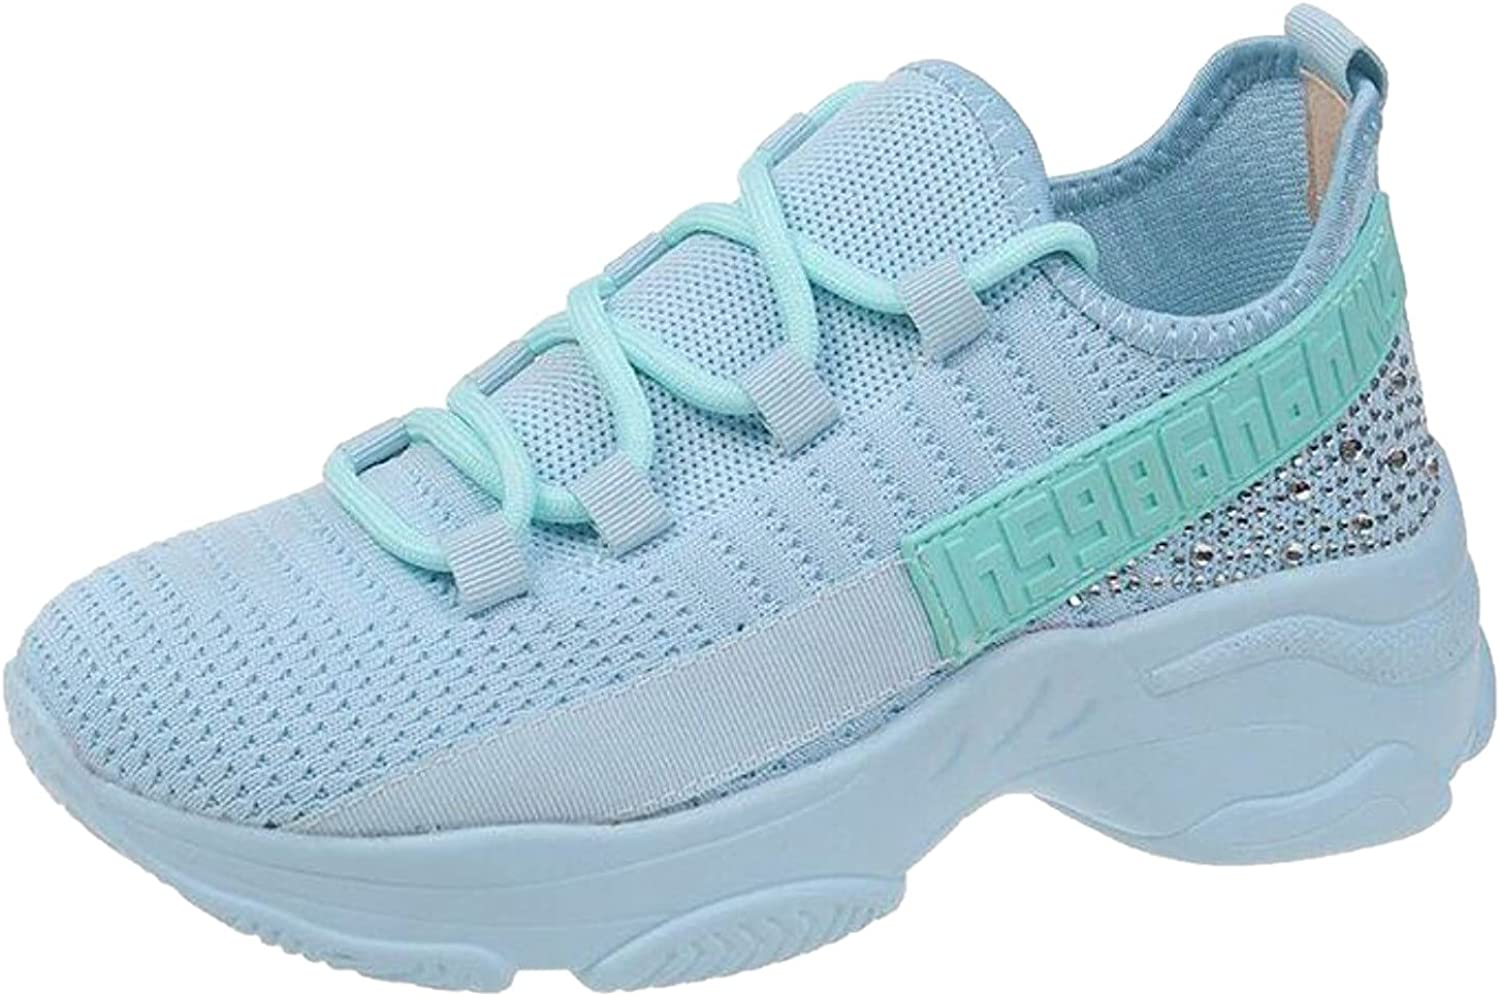 Women's Walking Shoes Arch Support Comfort Light Weight Mesh Non Slip Work Shoes